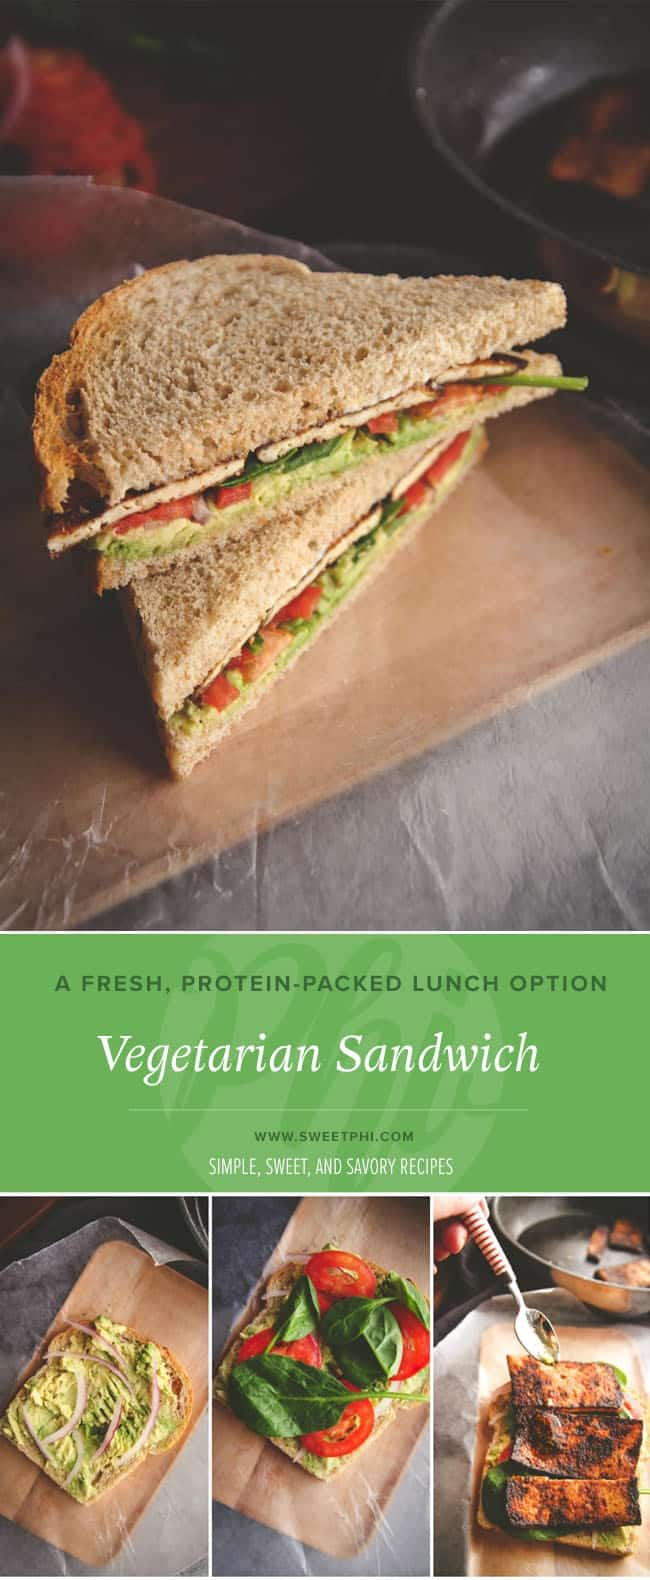 Easy and delicious vegetarian sandwich for lunch